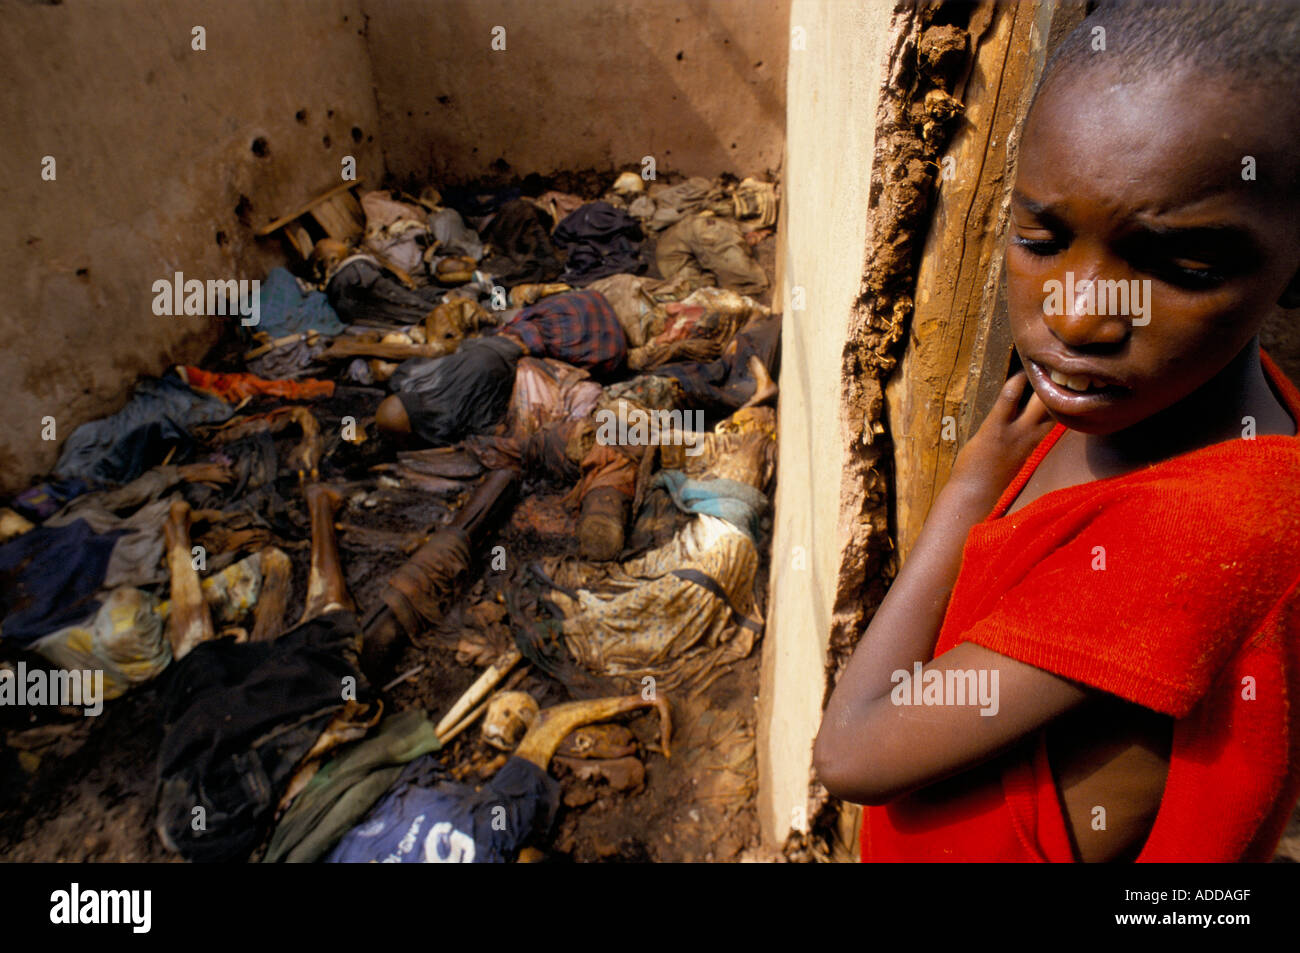 Kyonza, Rwanda, August 1994.  A young girl recoils from the sight of so much death. Bodies of Tutsis, murdered during the genocide remain unburied. - Stock Image